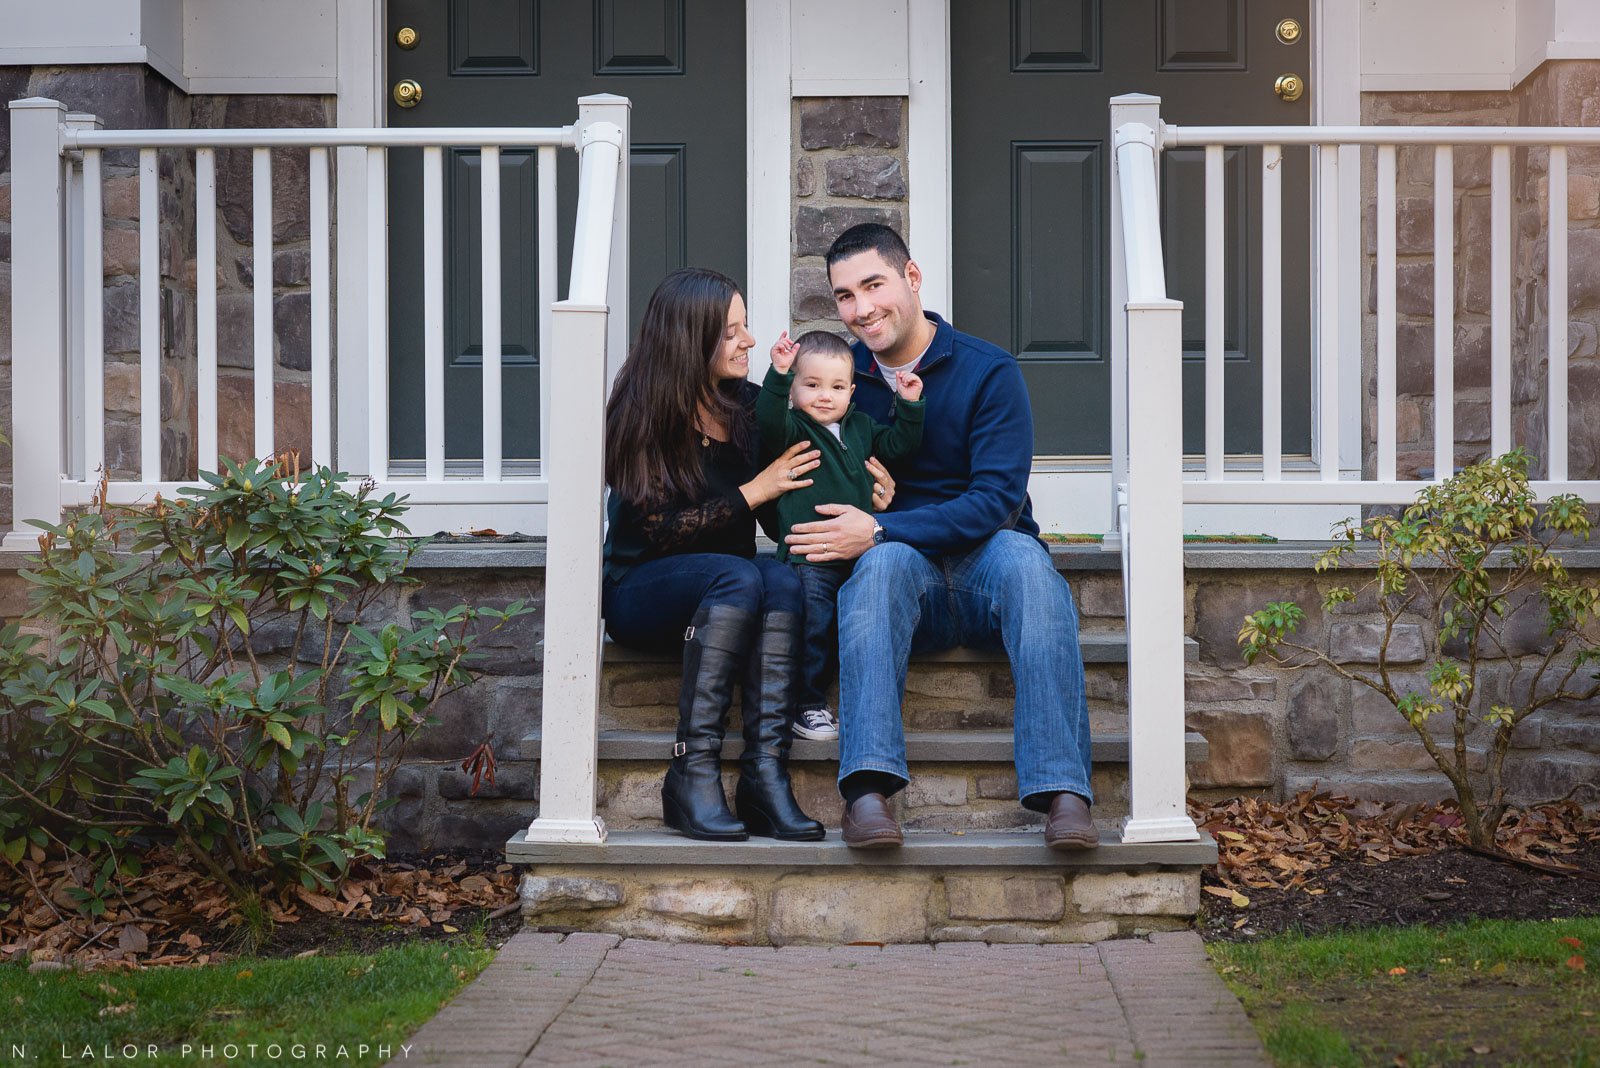 On the steps of their house. Lifestyle family portrait by N. Lalor Photography. Stamford, Connecticut.